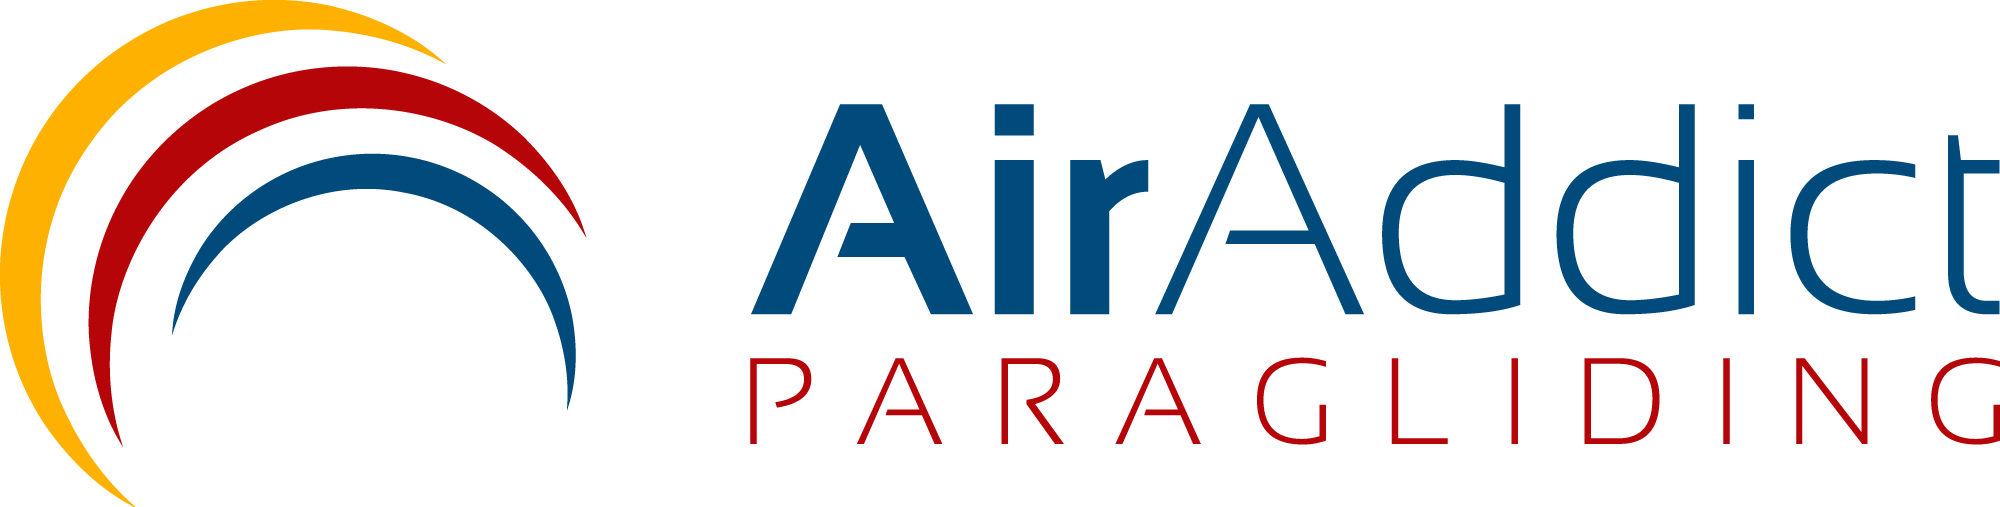 cropped-Air-Addict-Logo-horiz.jpg